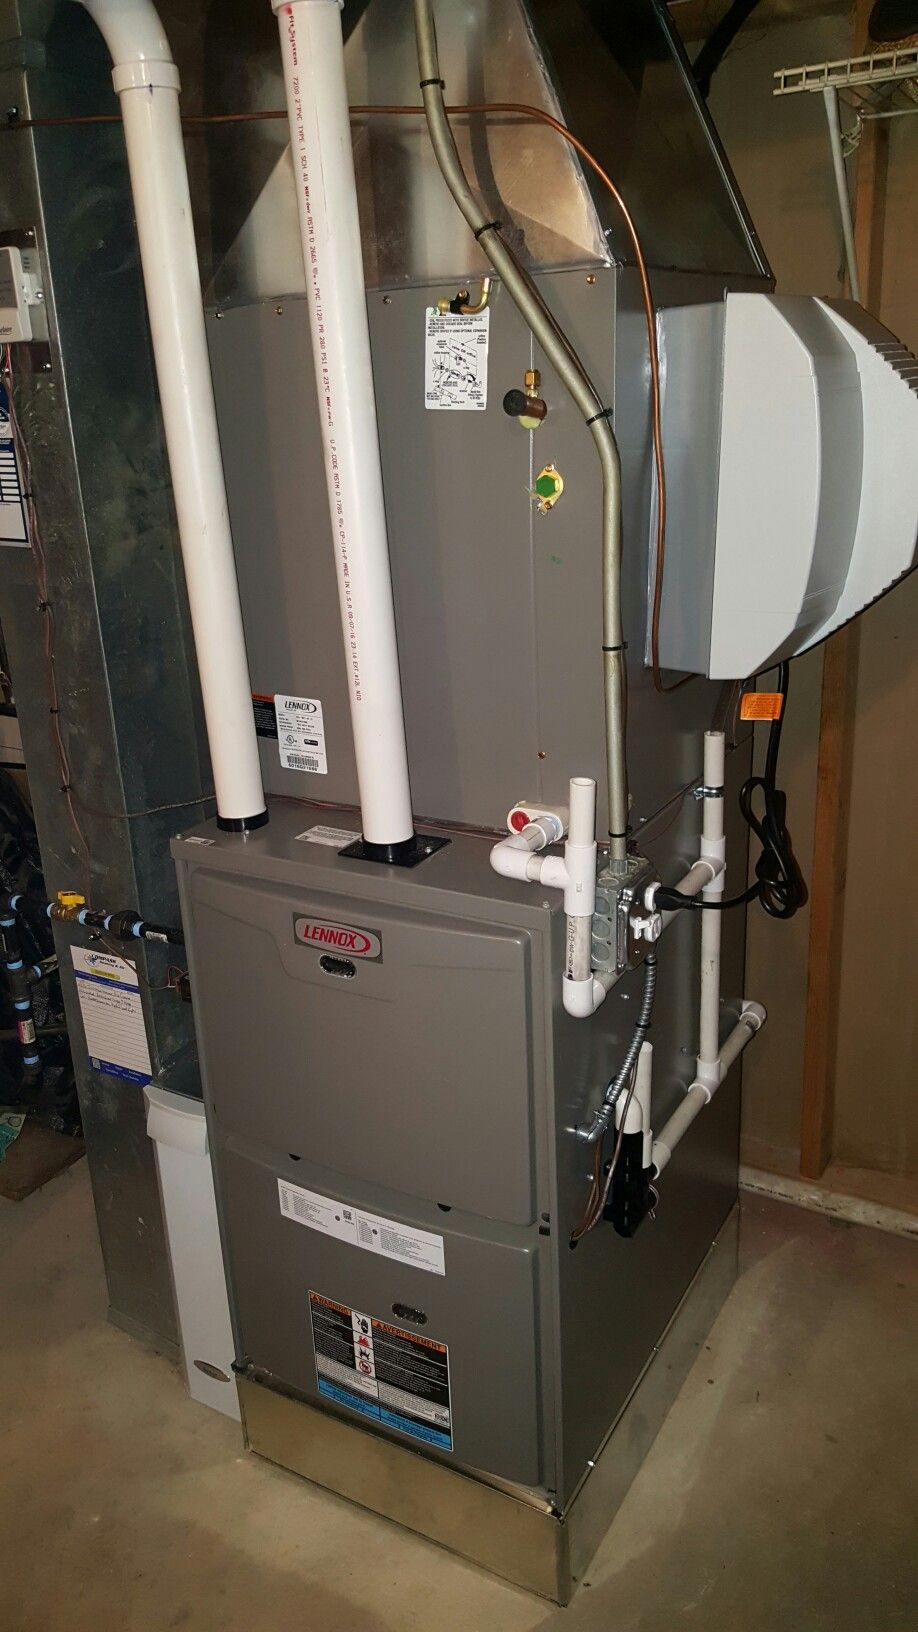 Lennox ML193 high efficiency furnace, cased evaporator